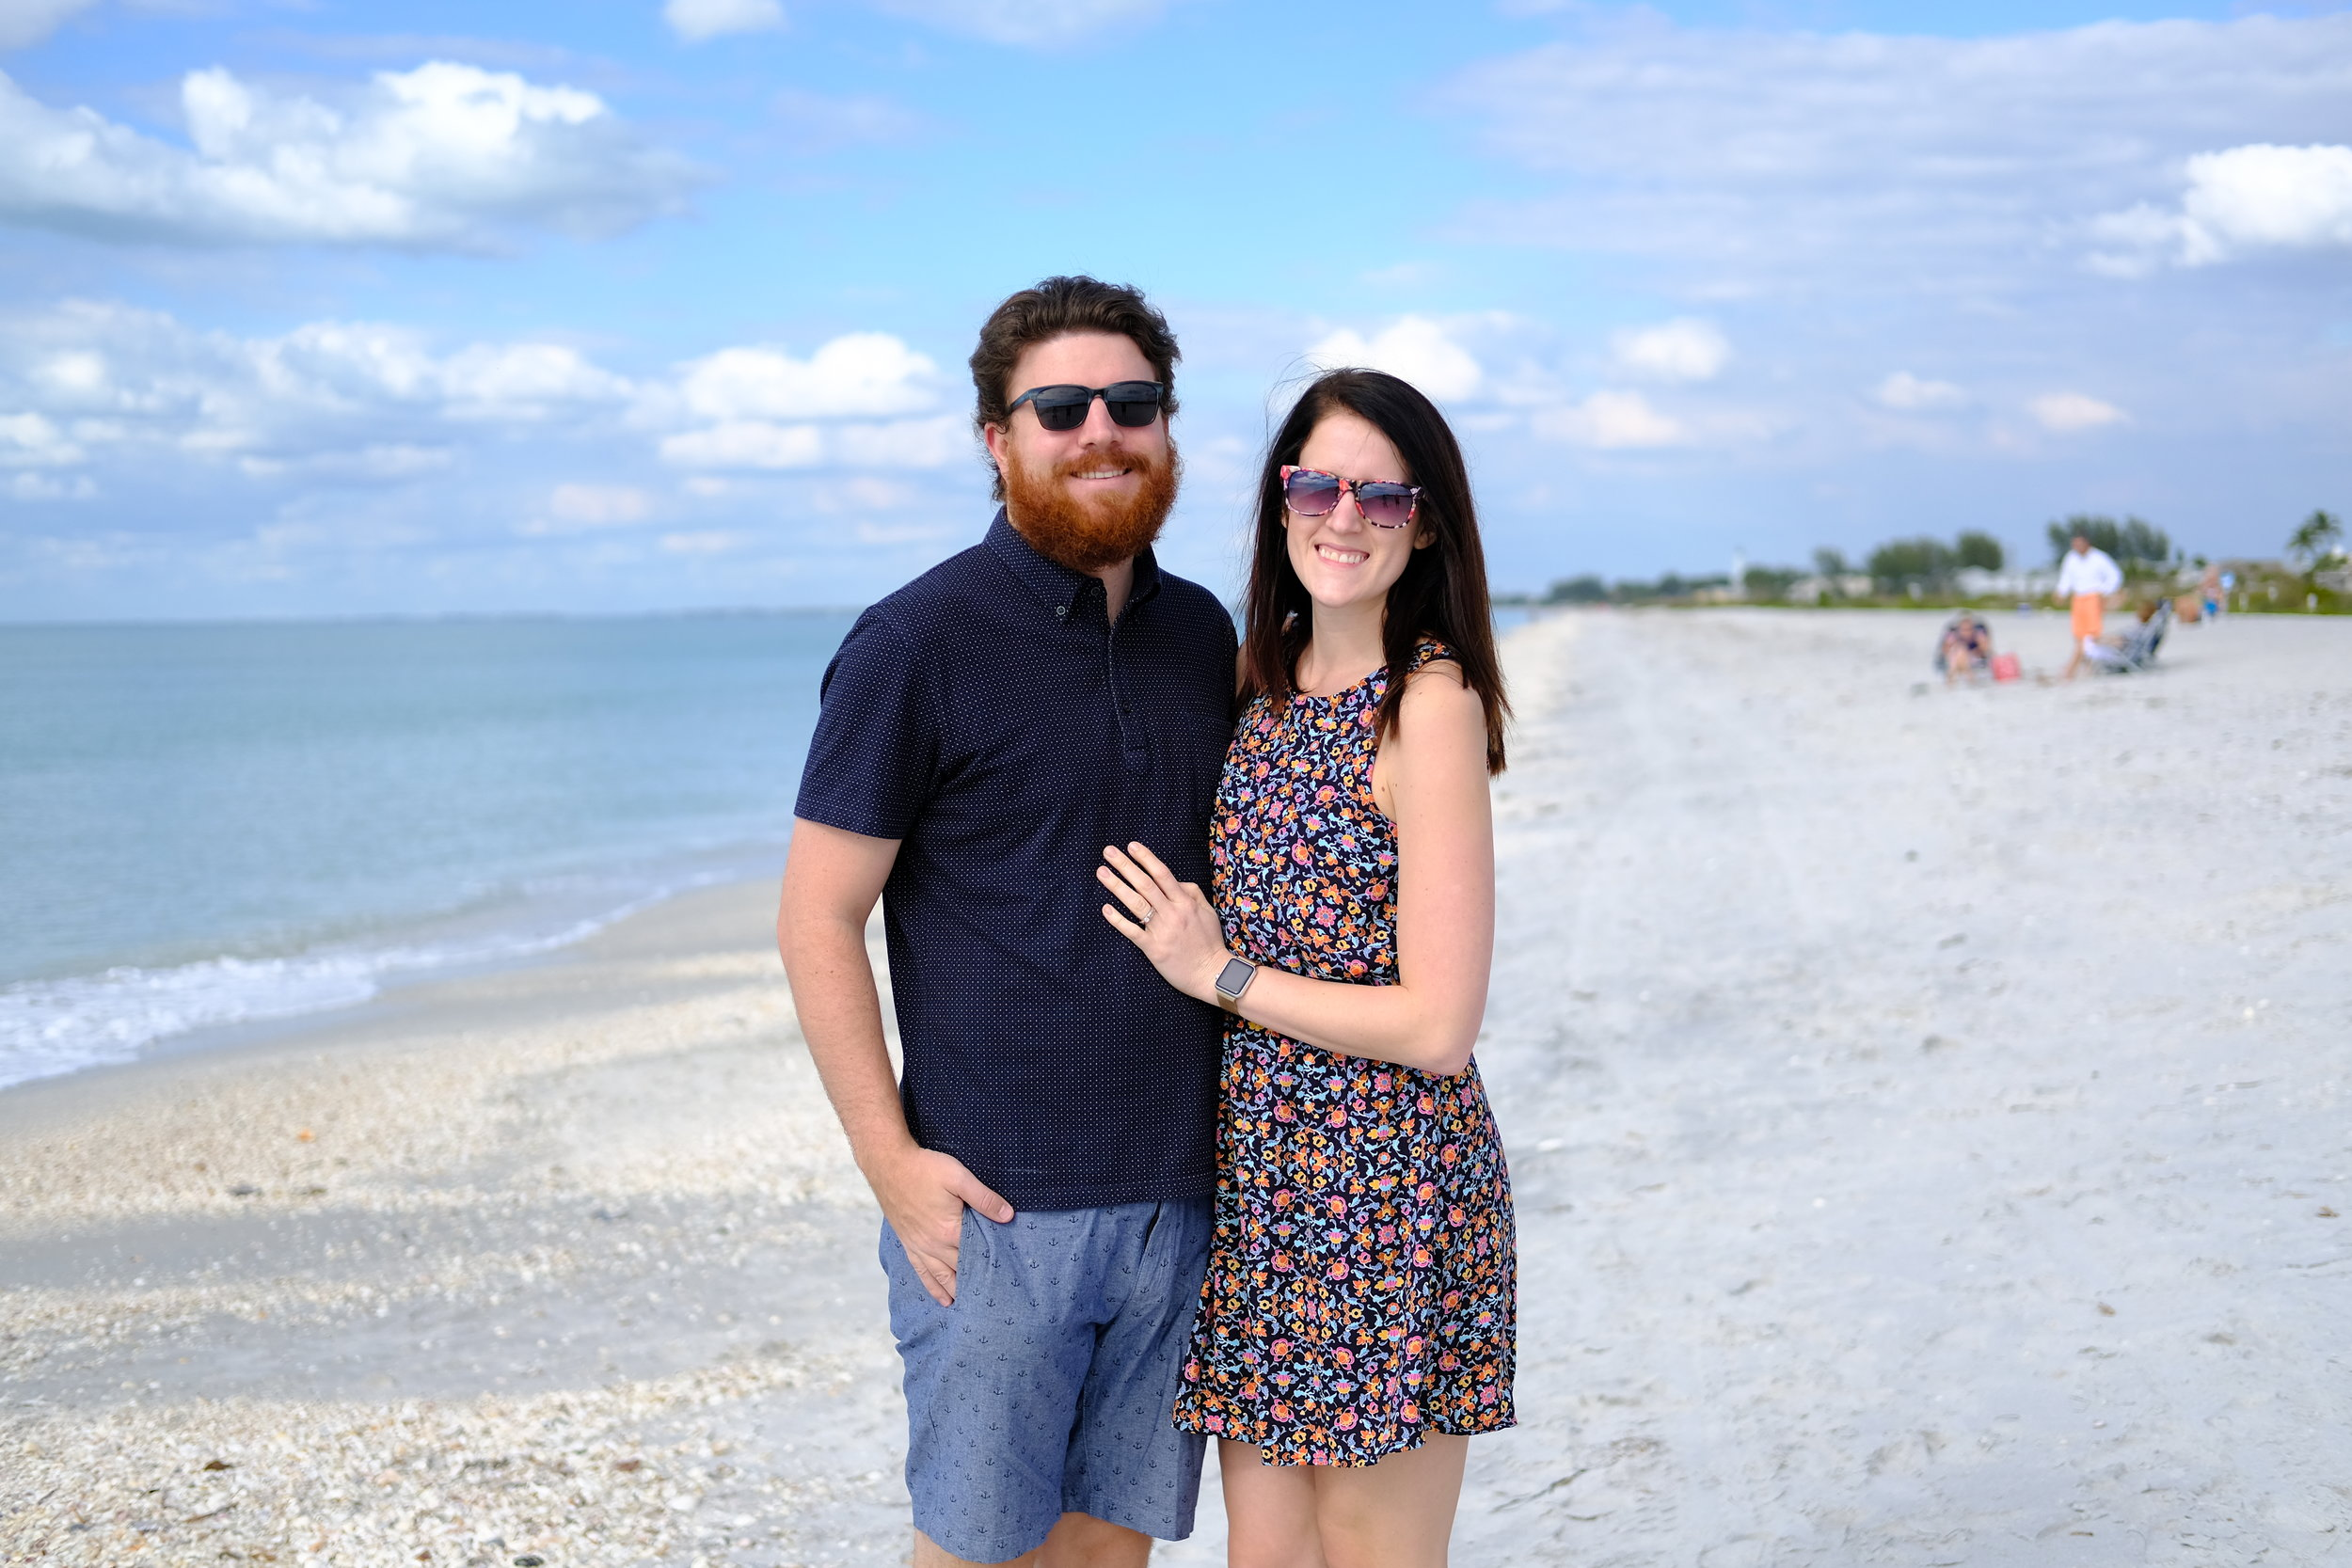 Visit to the beach in Tampa, Florida.